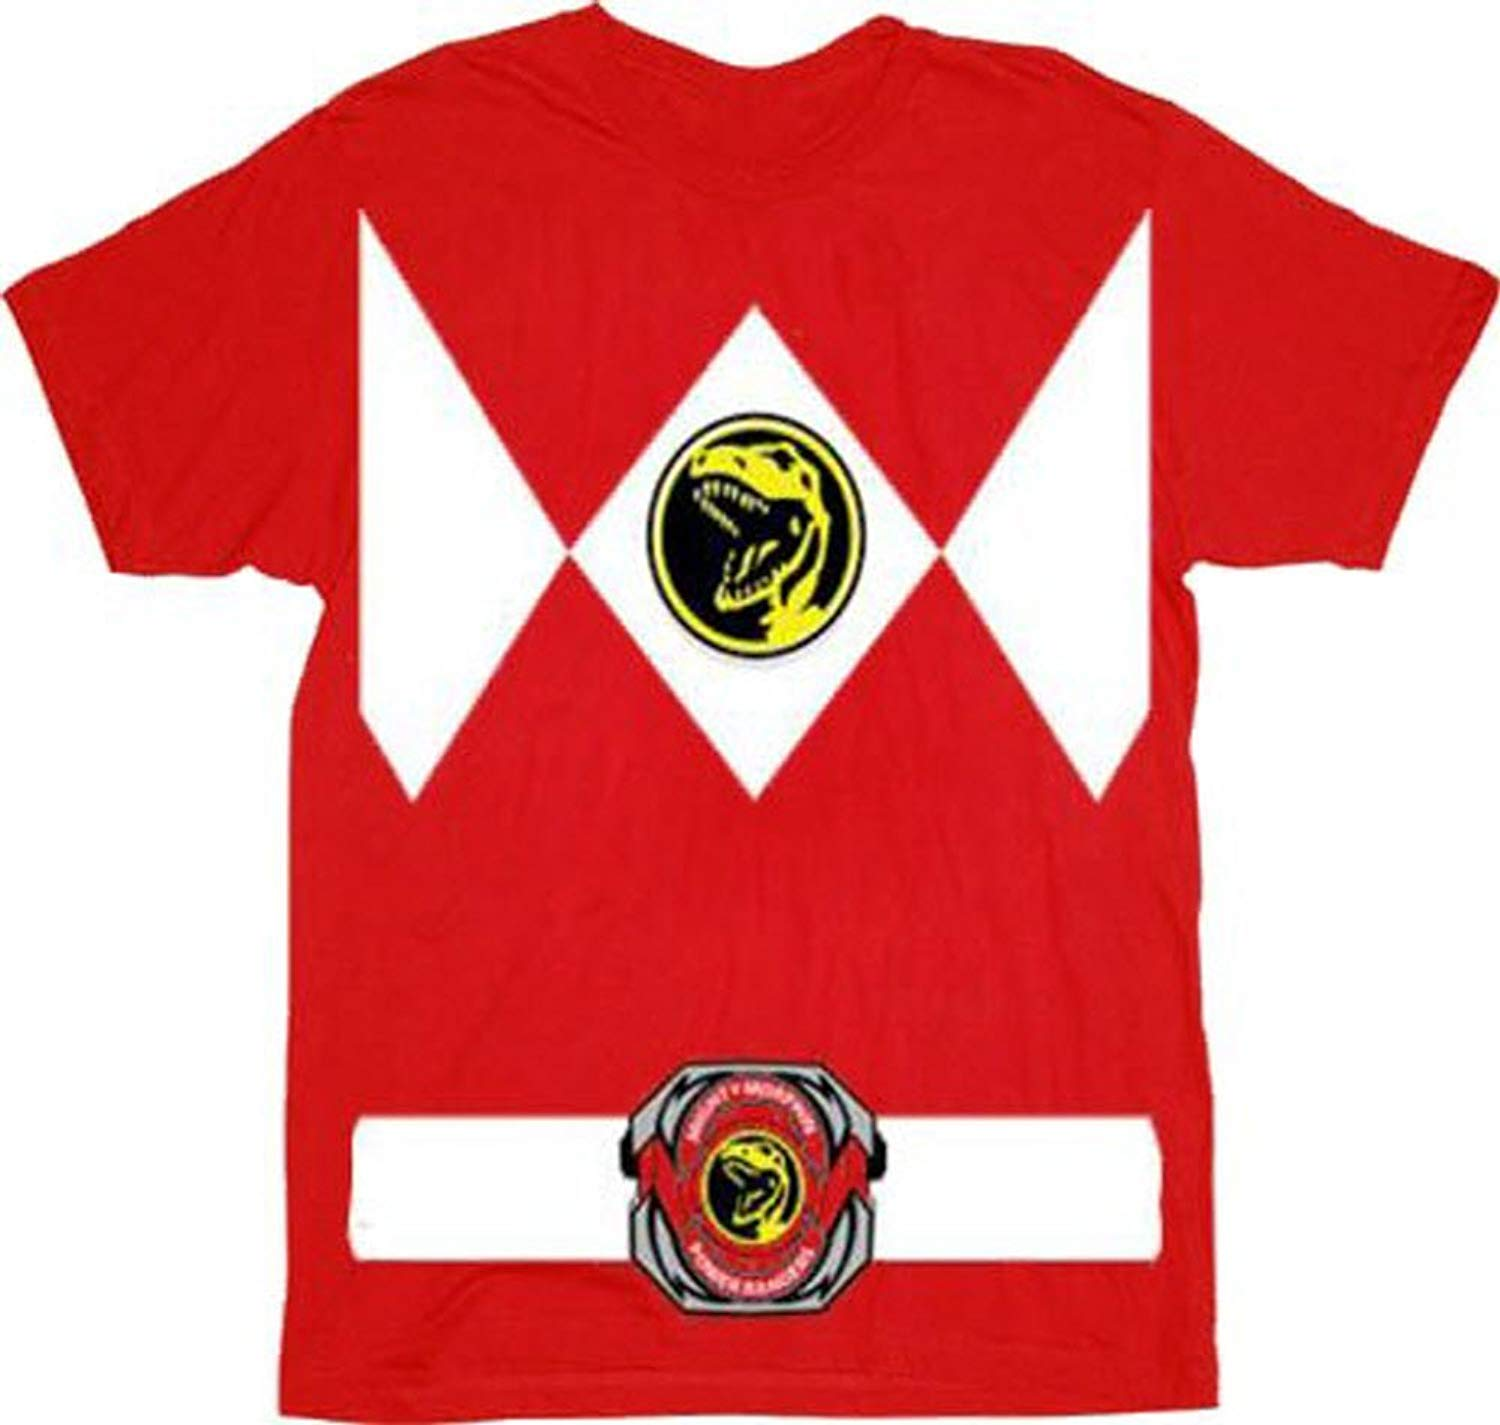 Belt clipart power ranger. Amazon com rangers costume